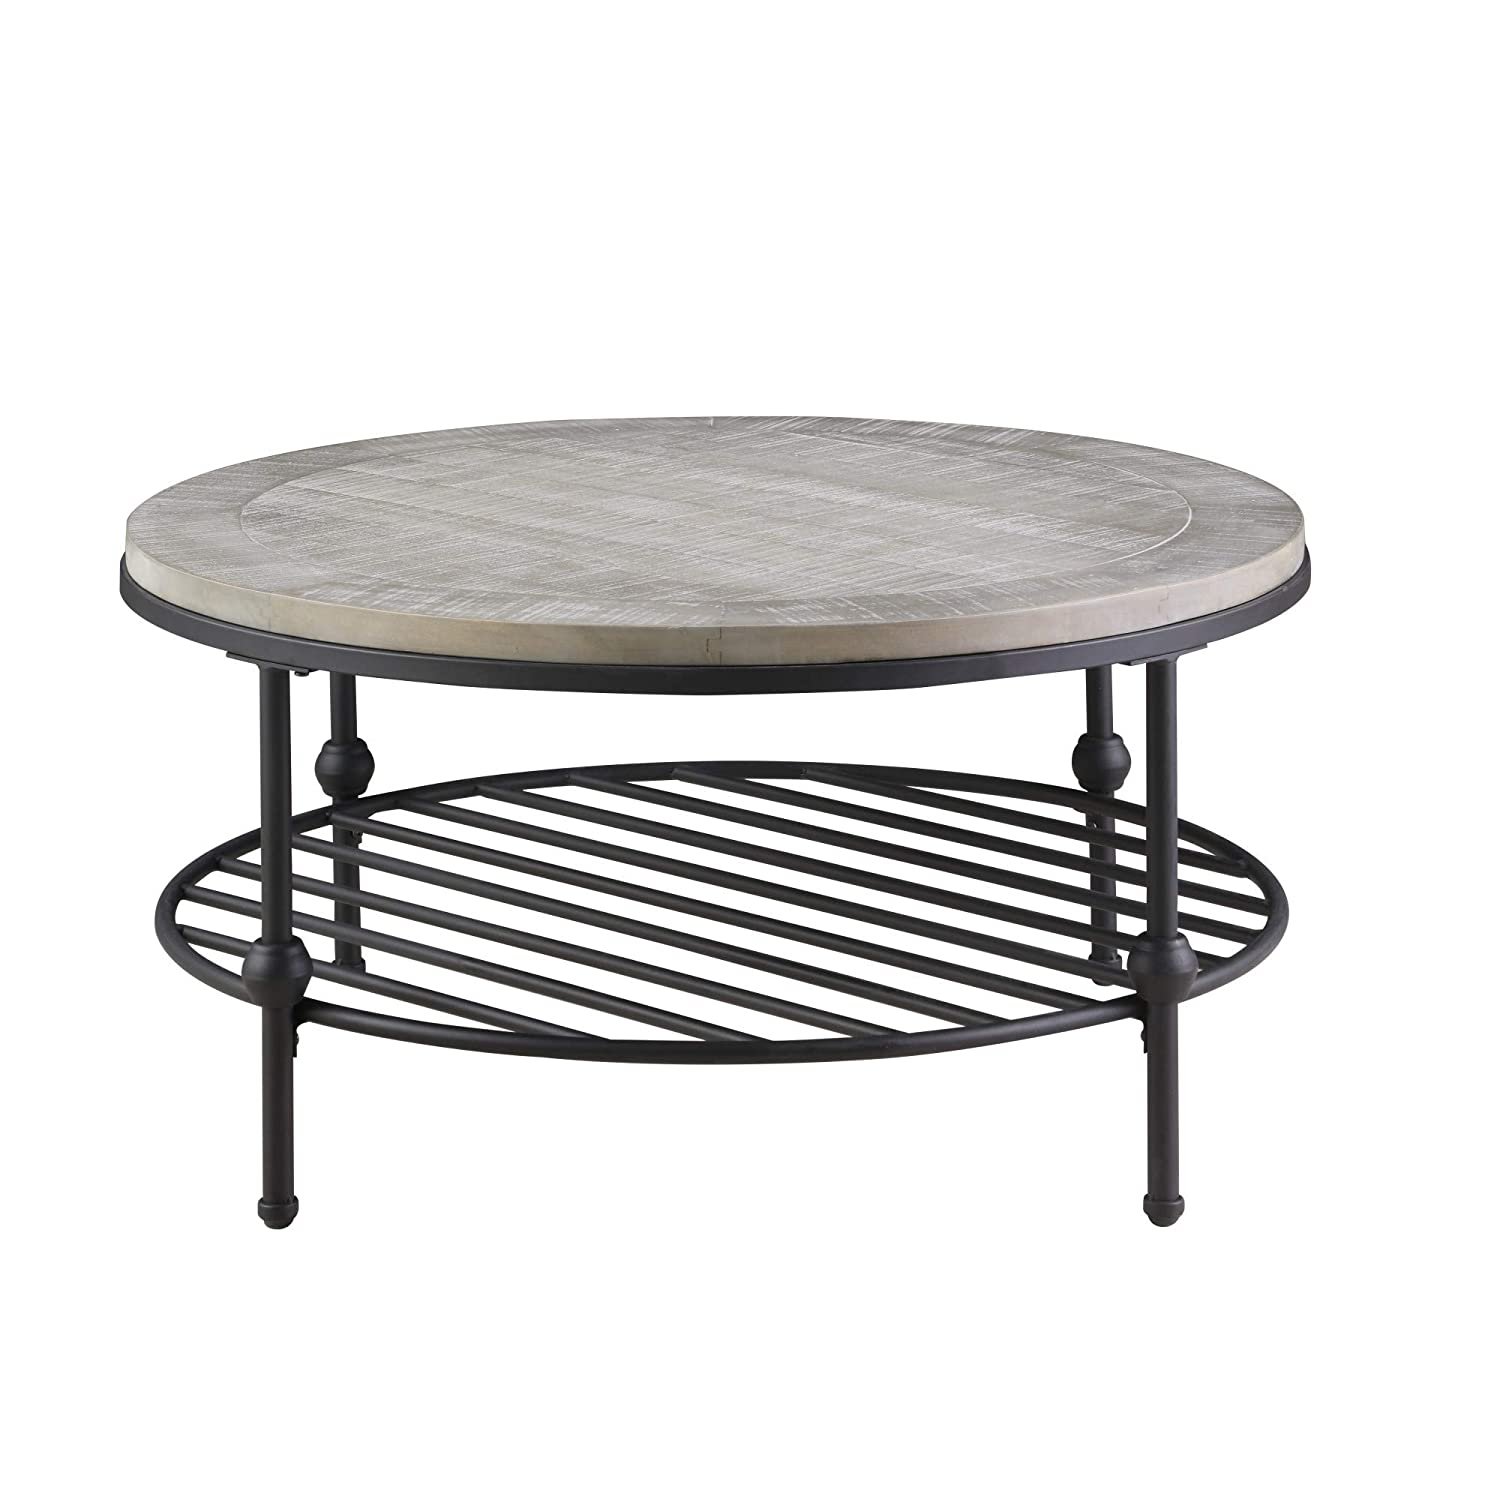 Magnificent Willis Round Coffee Table In Antique Gray With Wood Top Metal Base And Open Storage Shelf By Artum Hill Squirreltailoven Fun Painted Chair Ideas Images Squirreltailovenorg